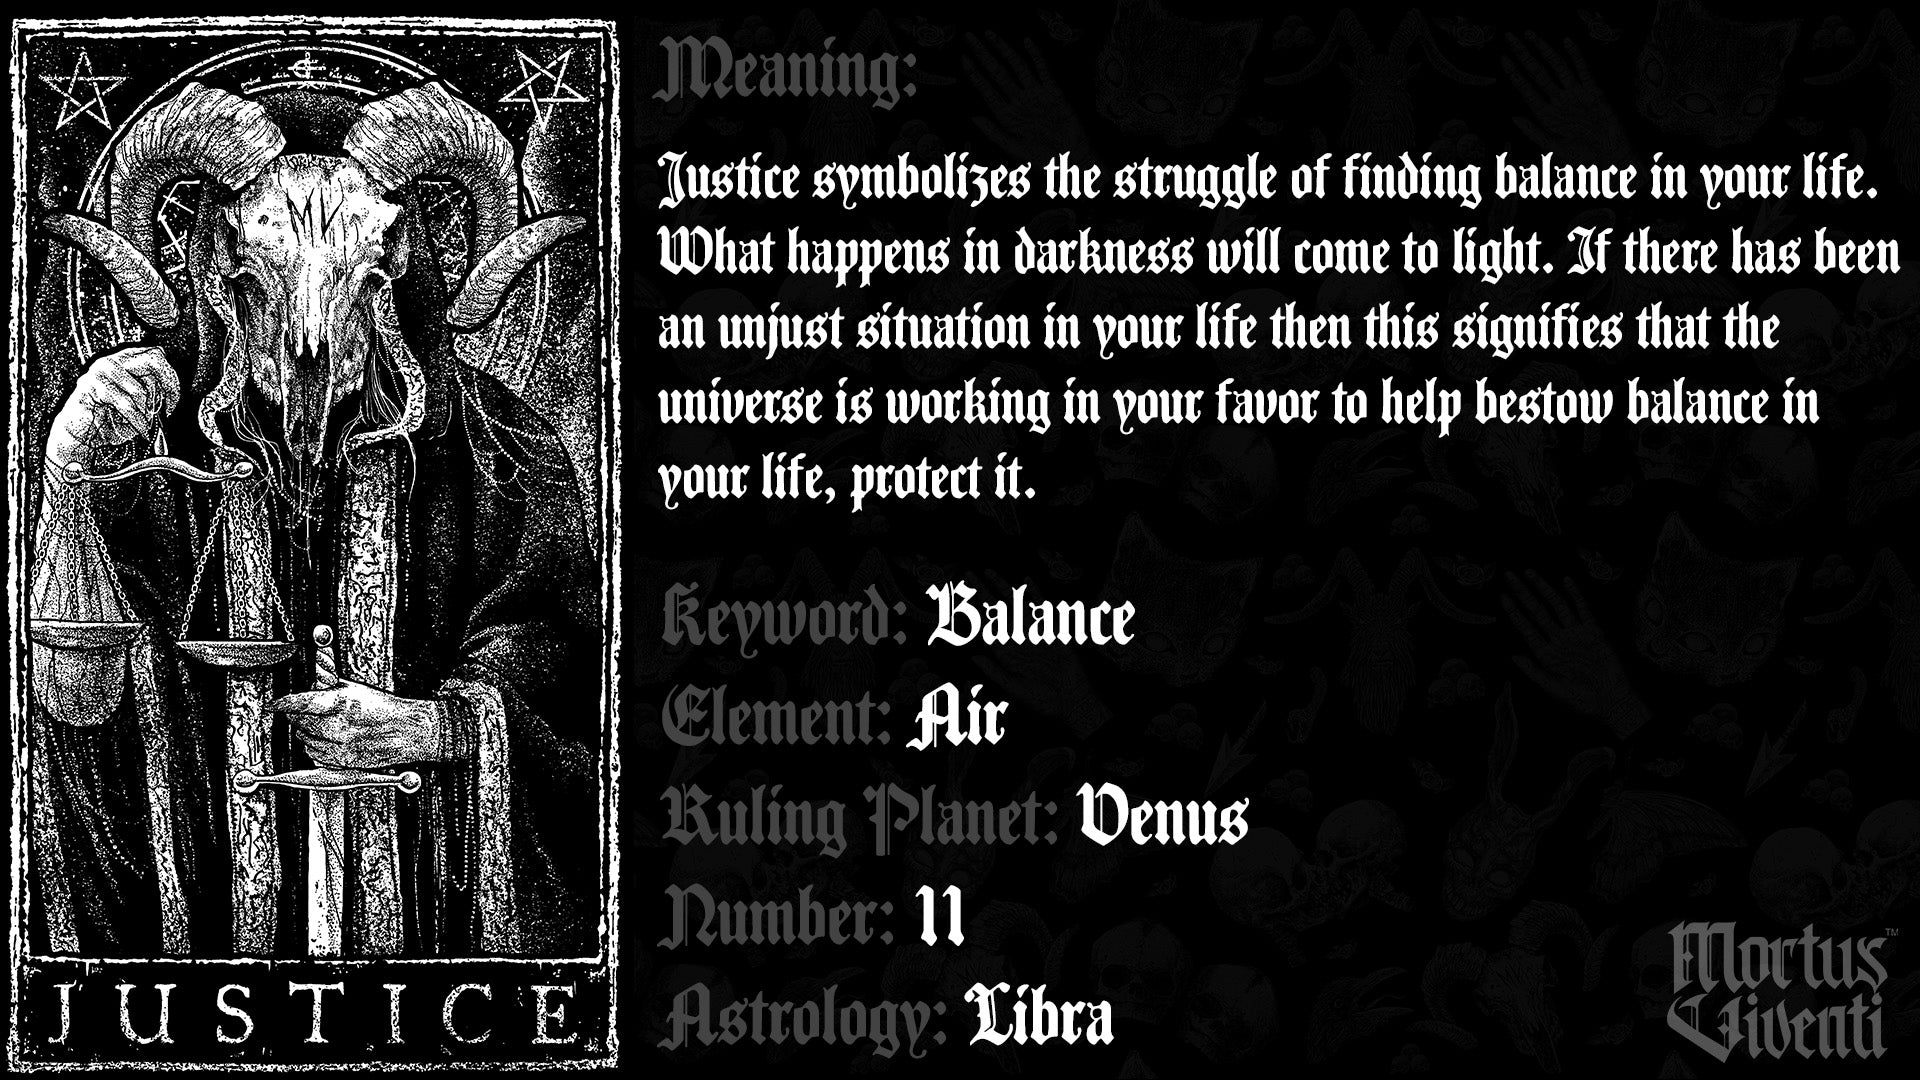 Justice Tarot Card Meaning Mortus Viventi